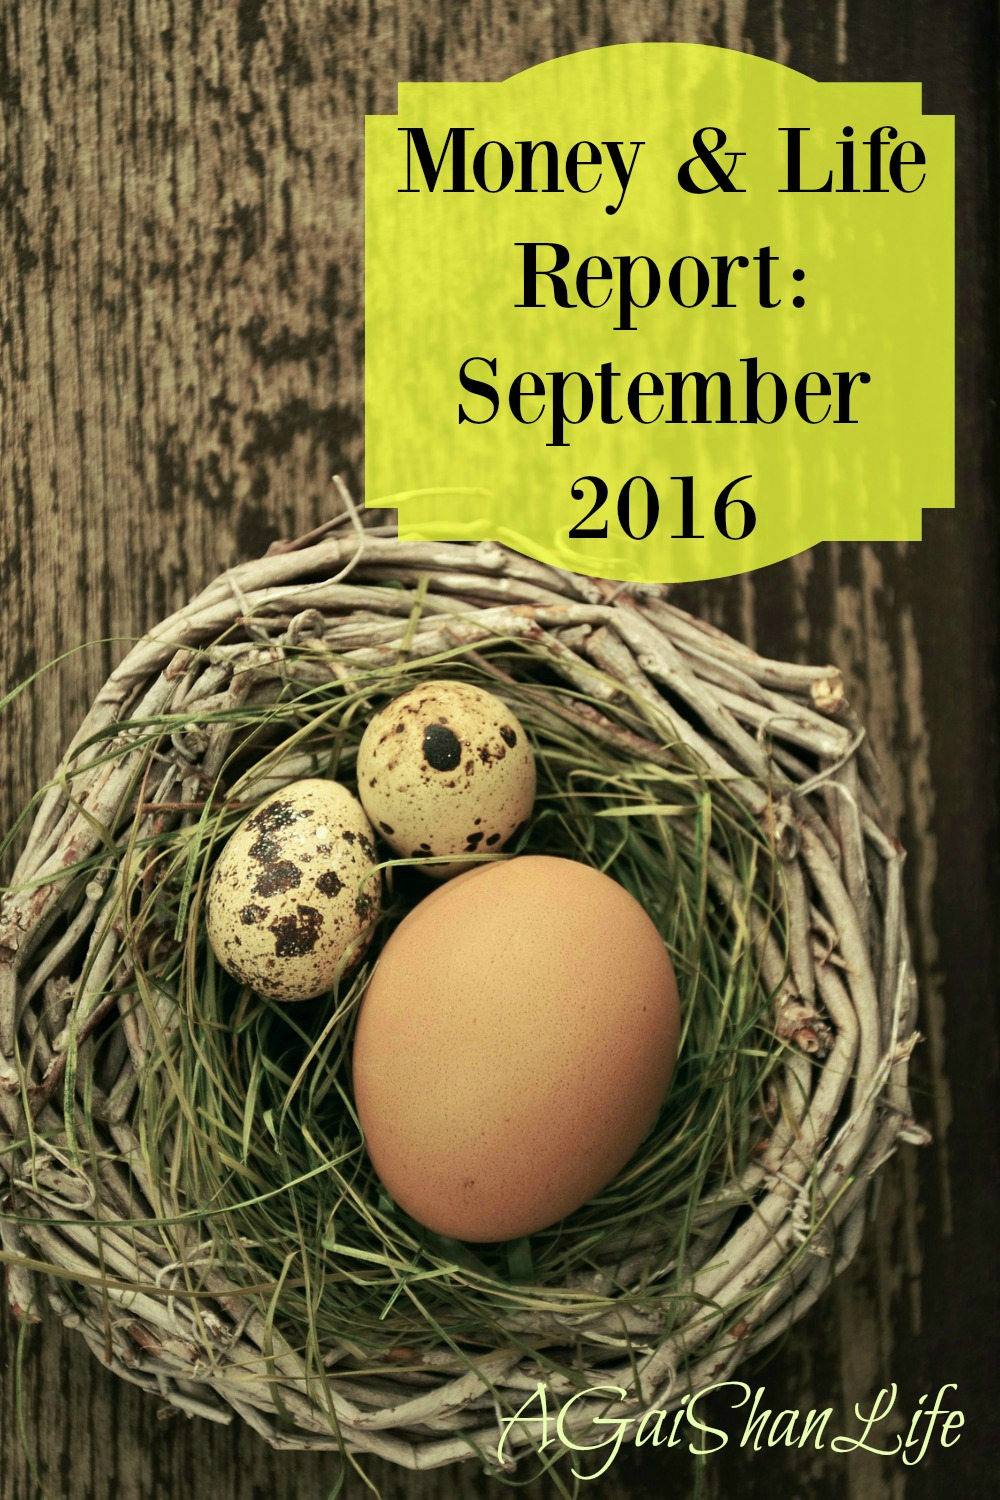 Money and Life Report: September 2016